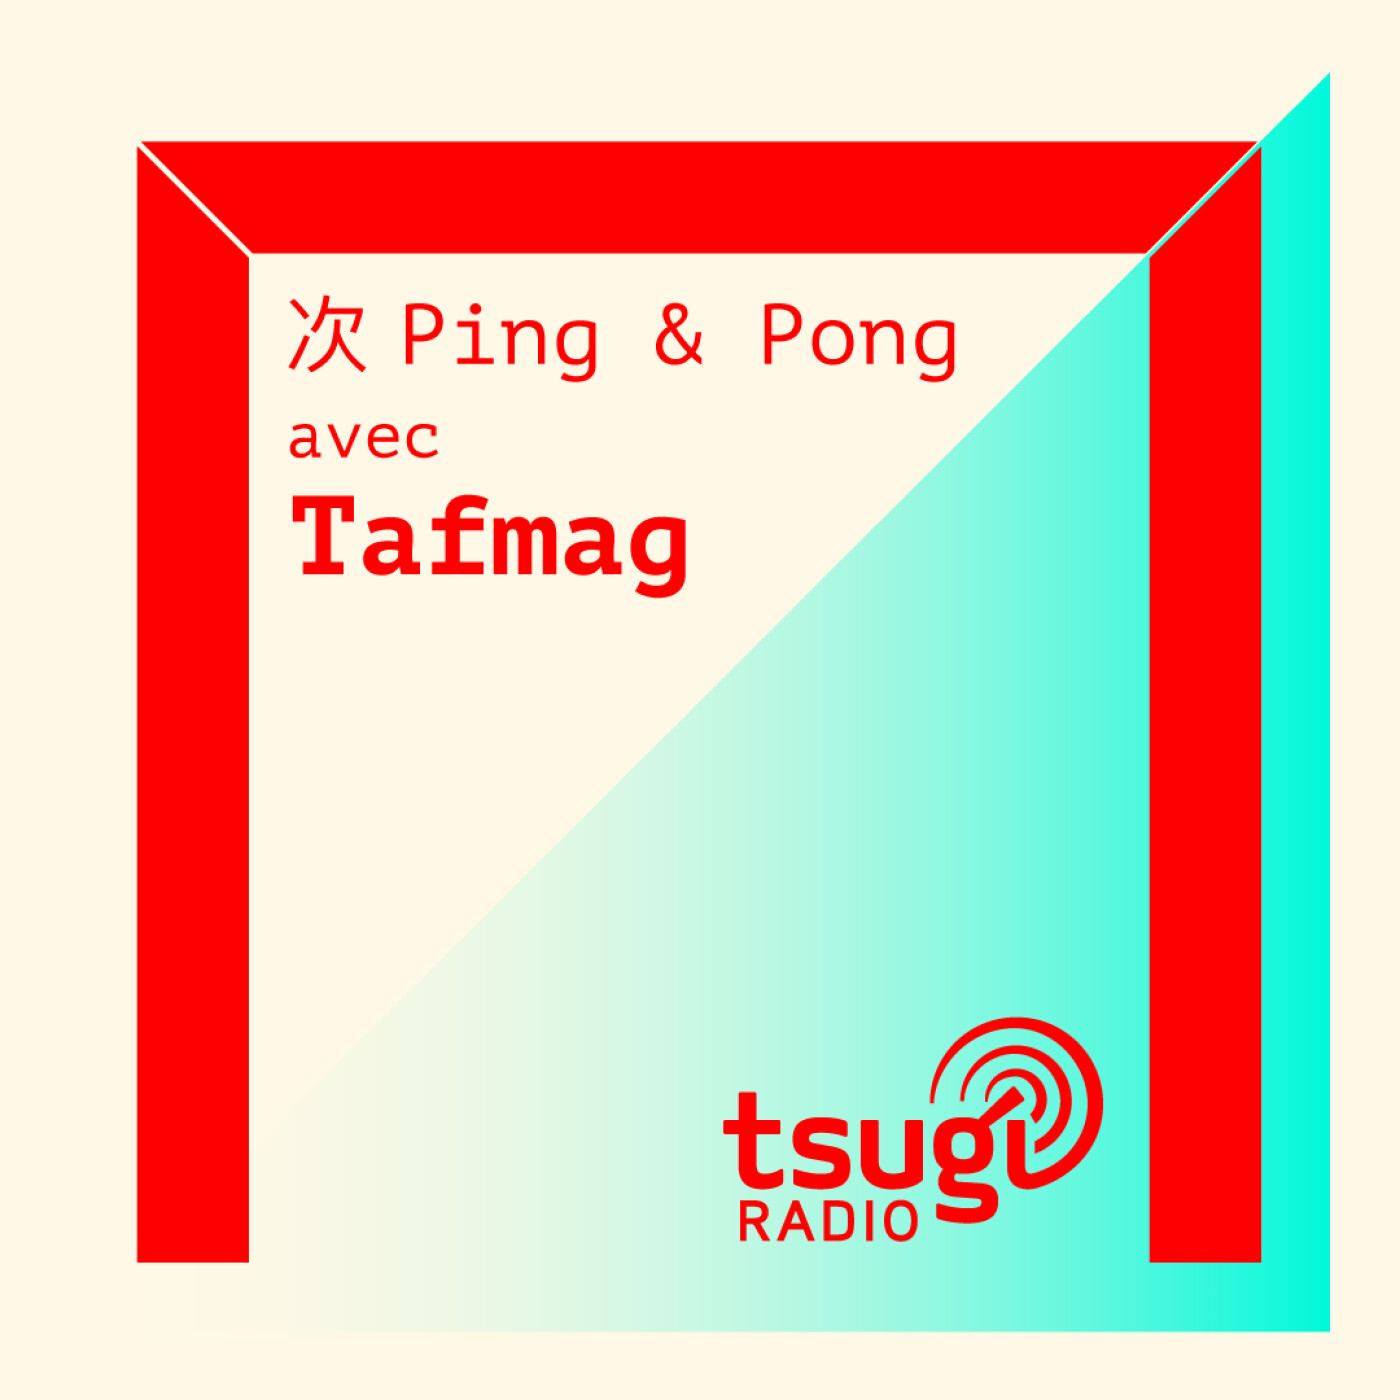 Ping & Pong avec Tafmag, Jean Morel & Olivier Cachin